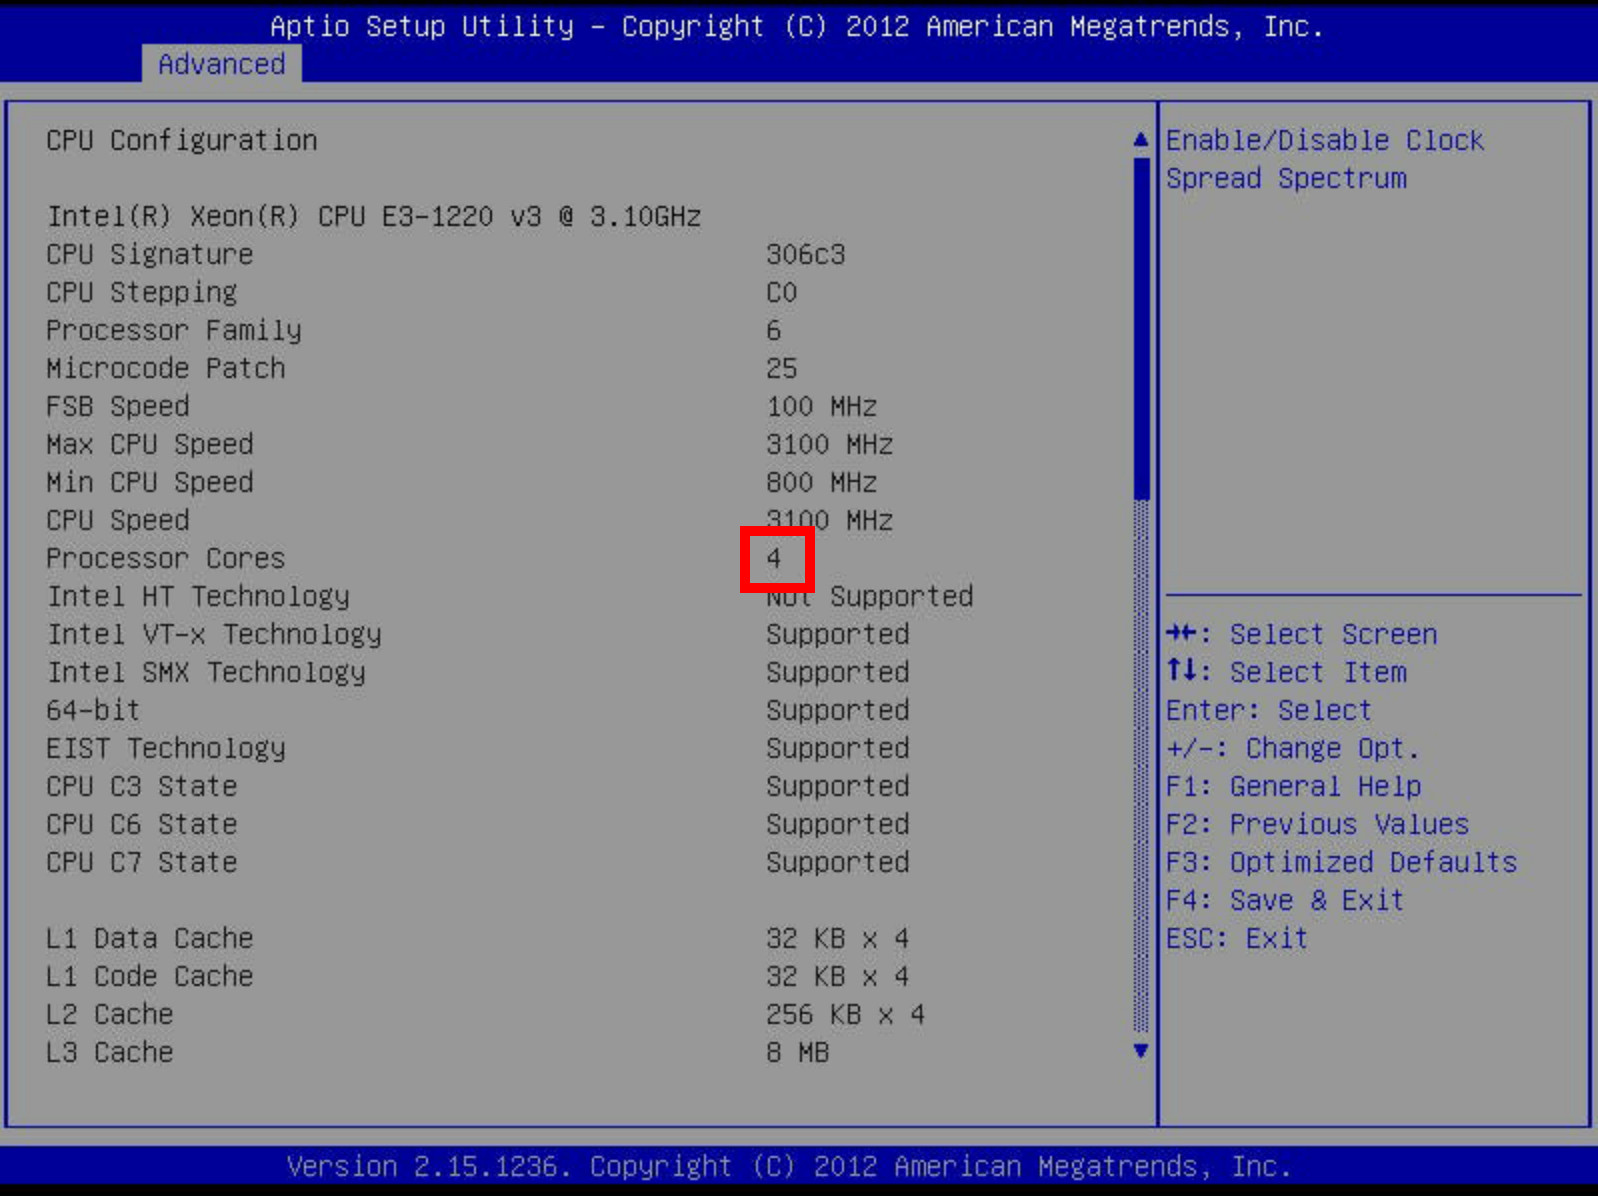 Screenshot of the Supermicro BIOS, showing that the CPU is operating normally.